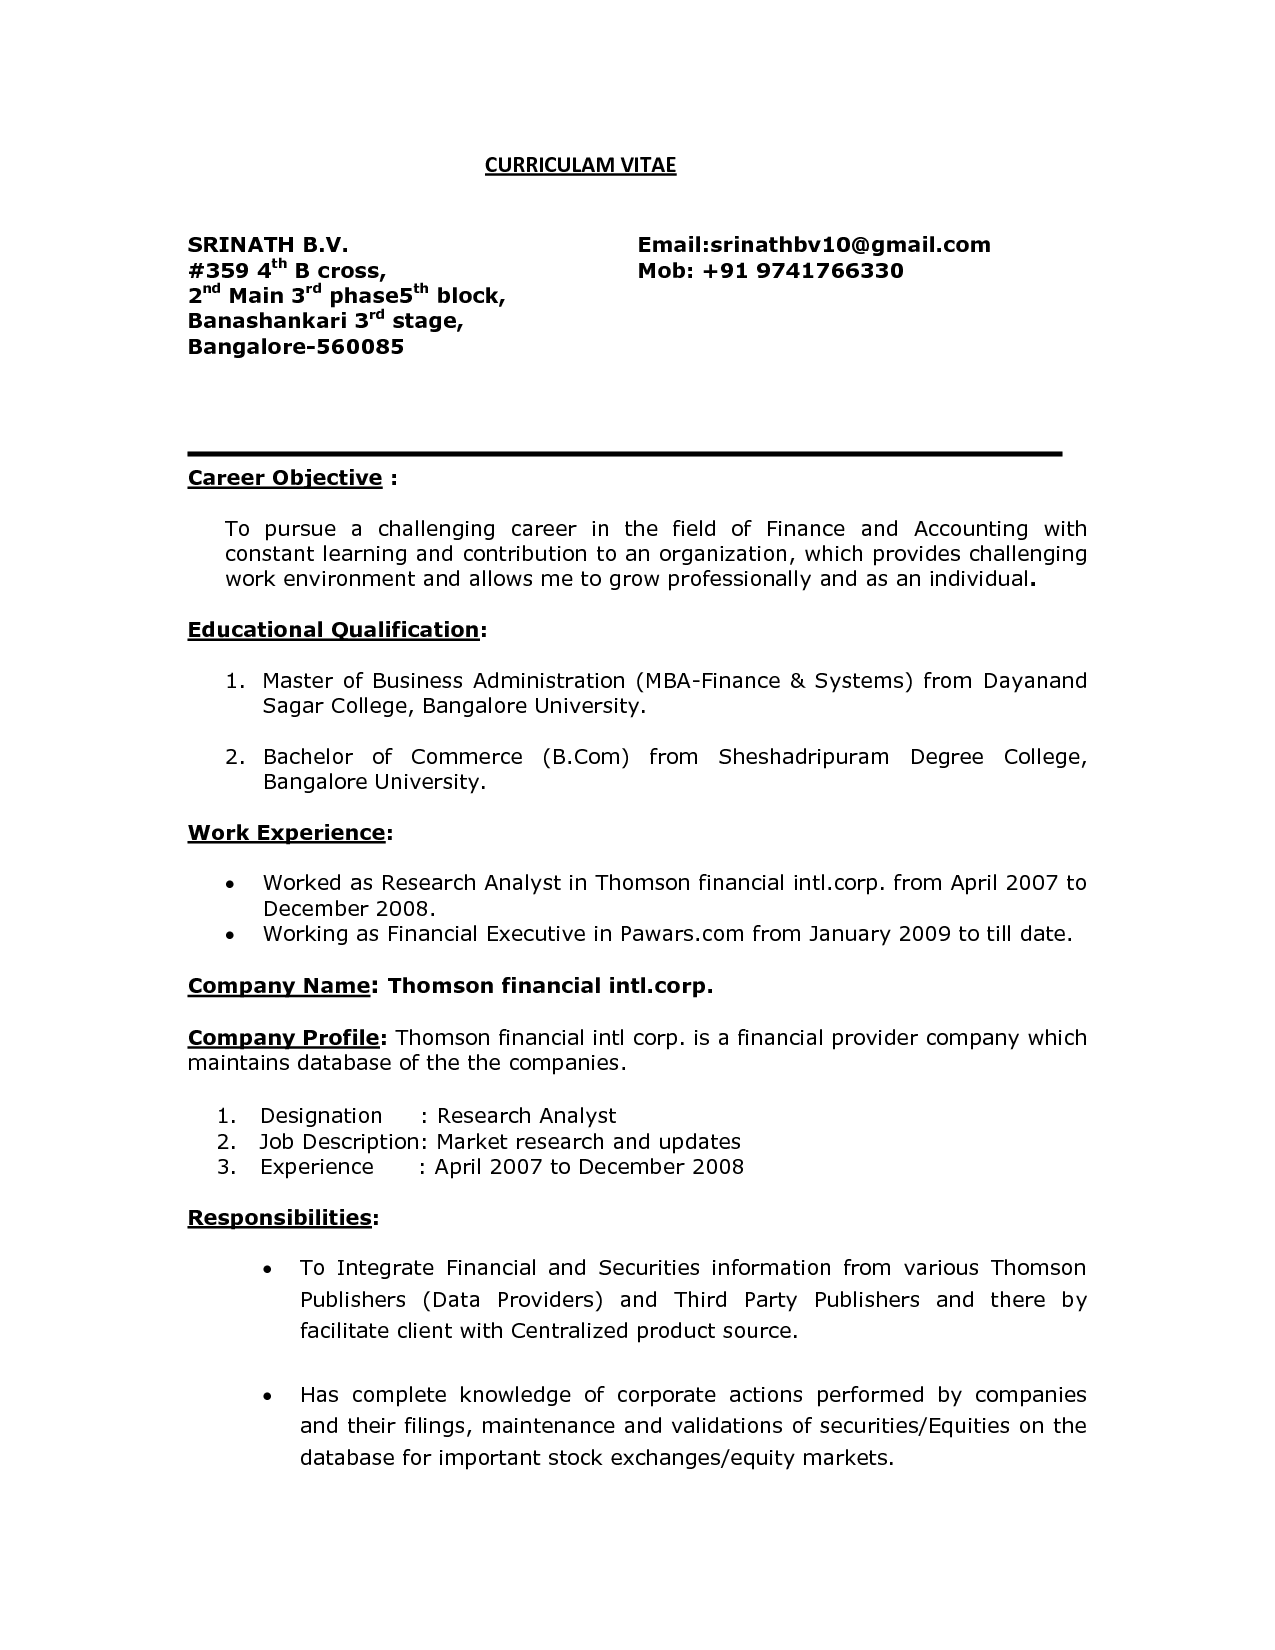 Cover Letter Examples For Finance Sample Cover Letter For Finance